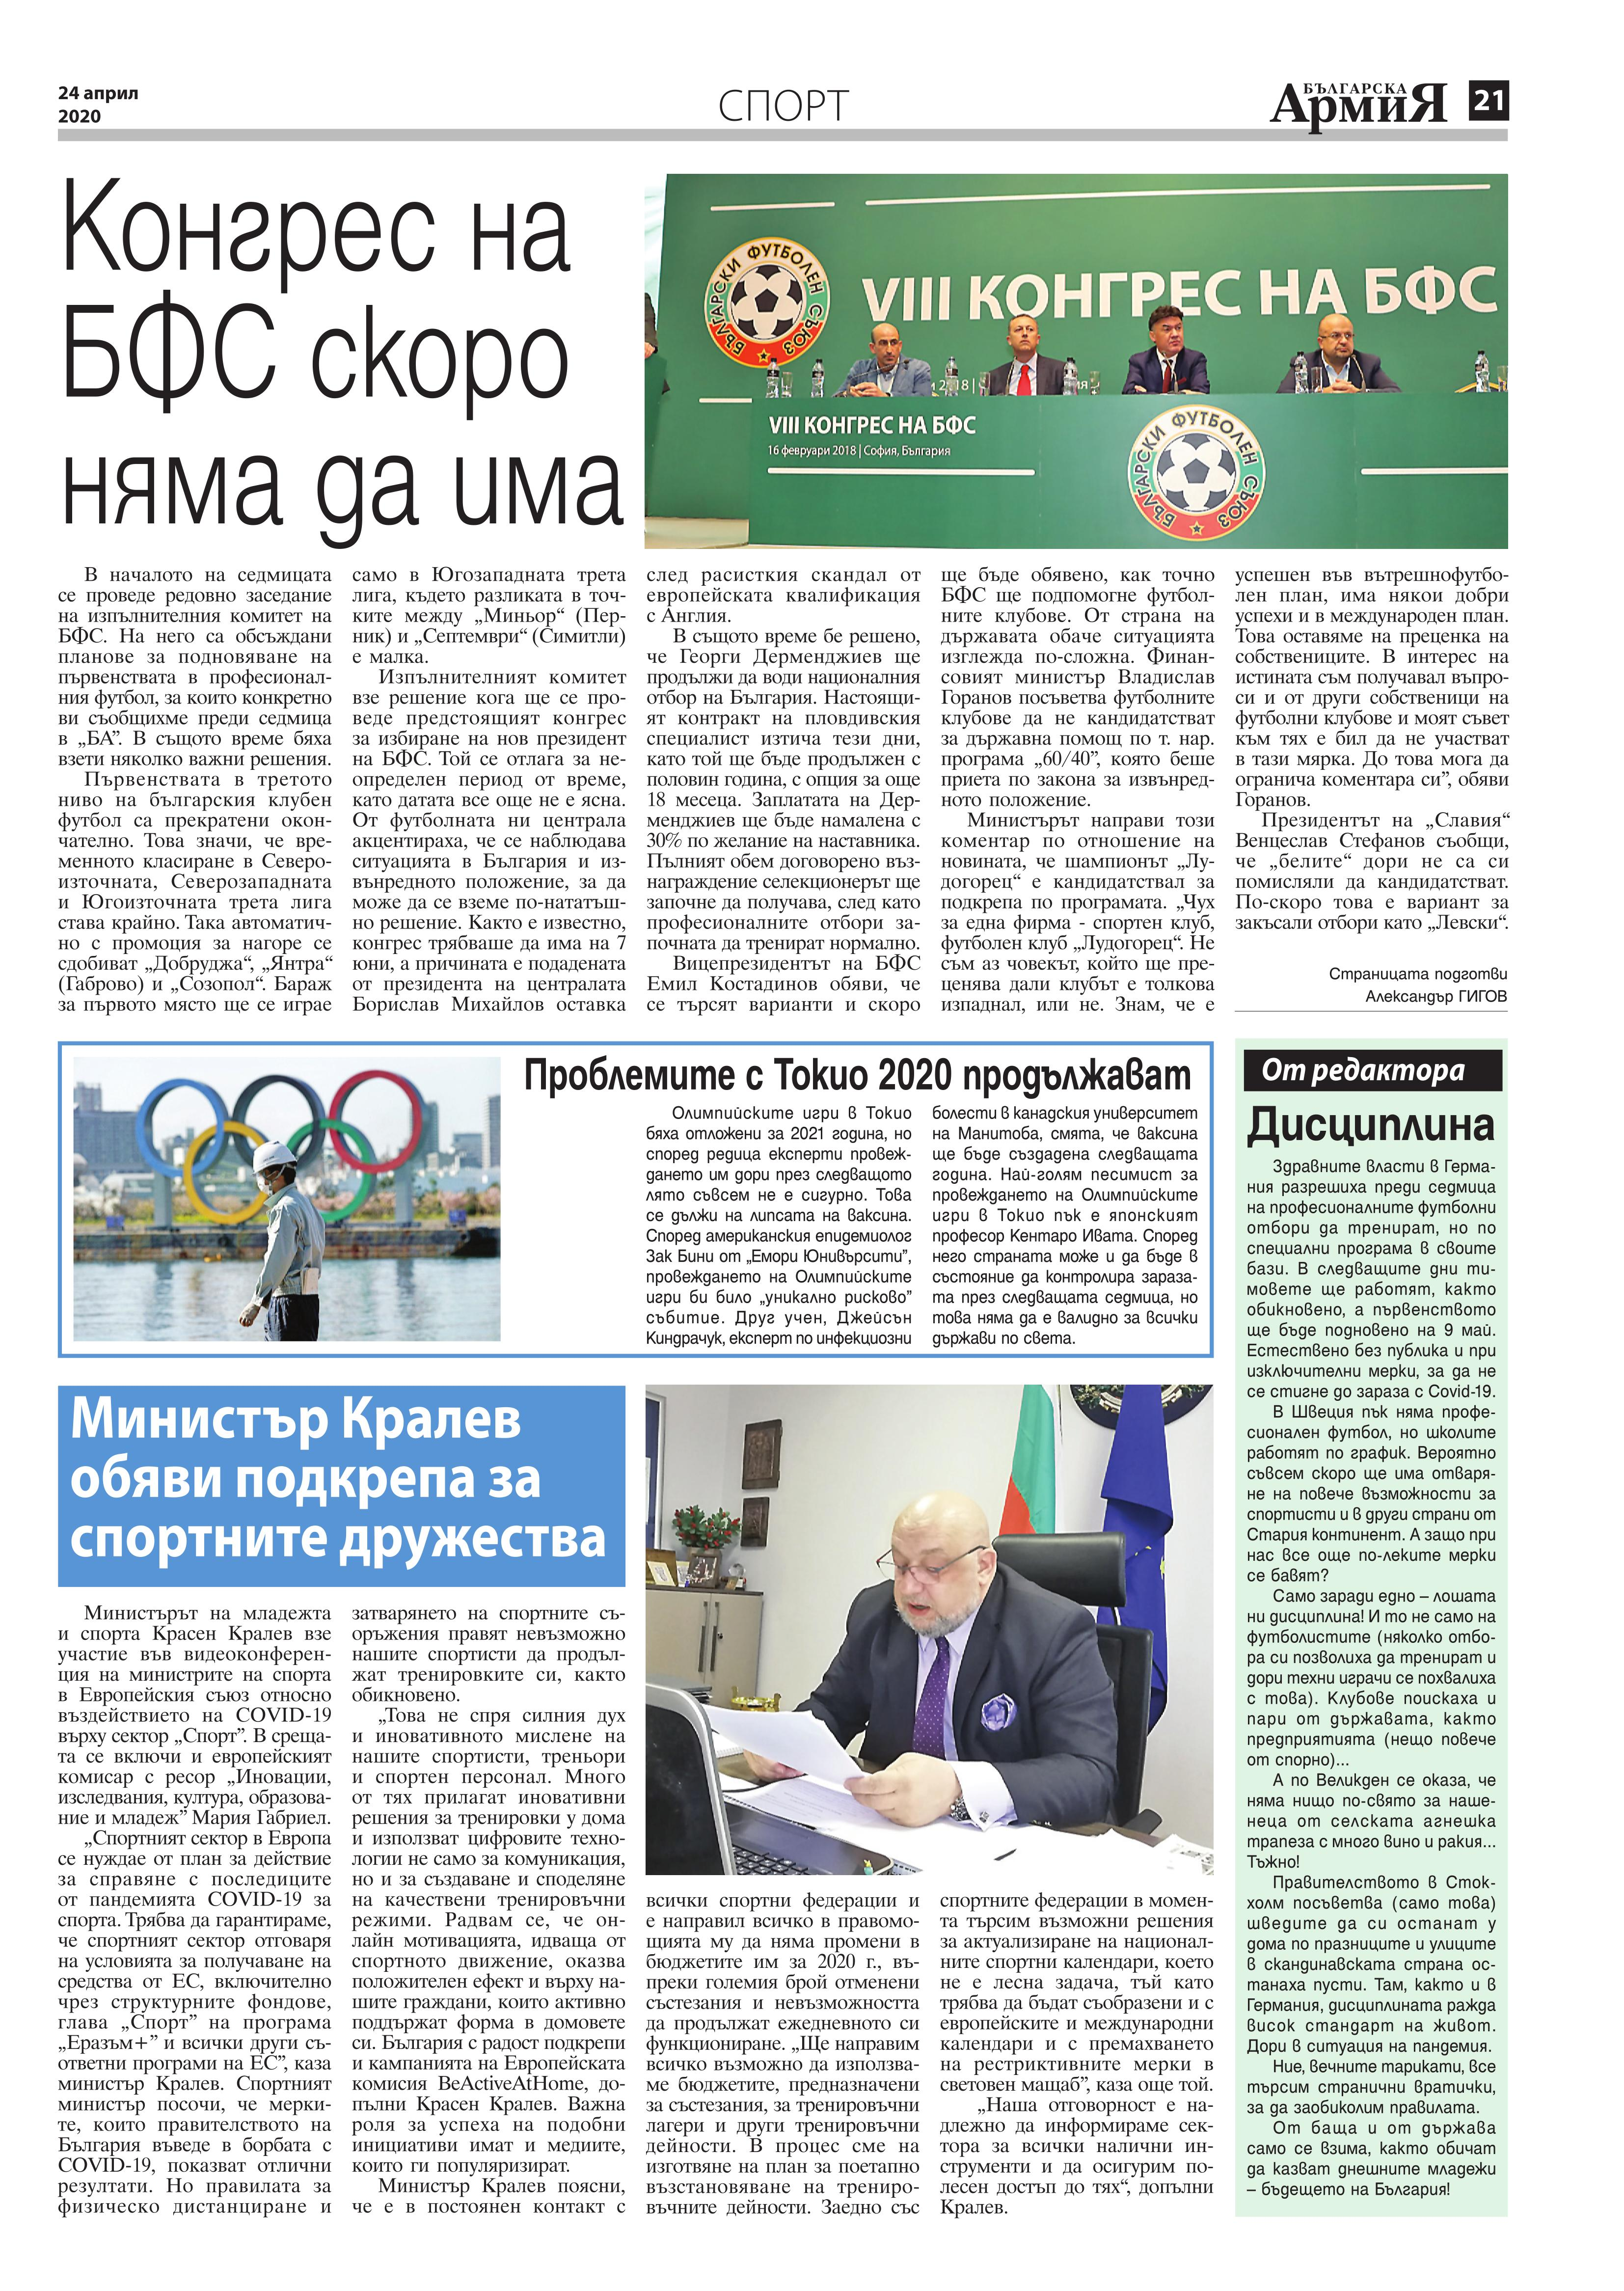 https://www.armymedia.bg/wp-content/uploads/2015/06/21.page1_-136.jpg